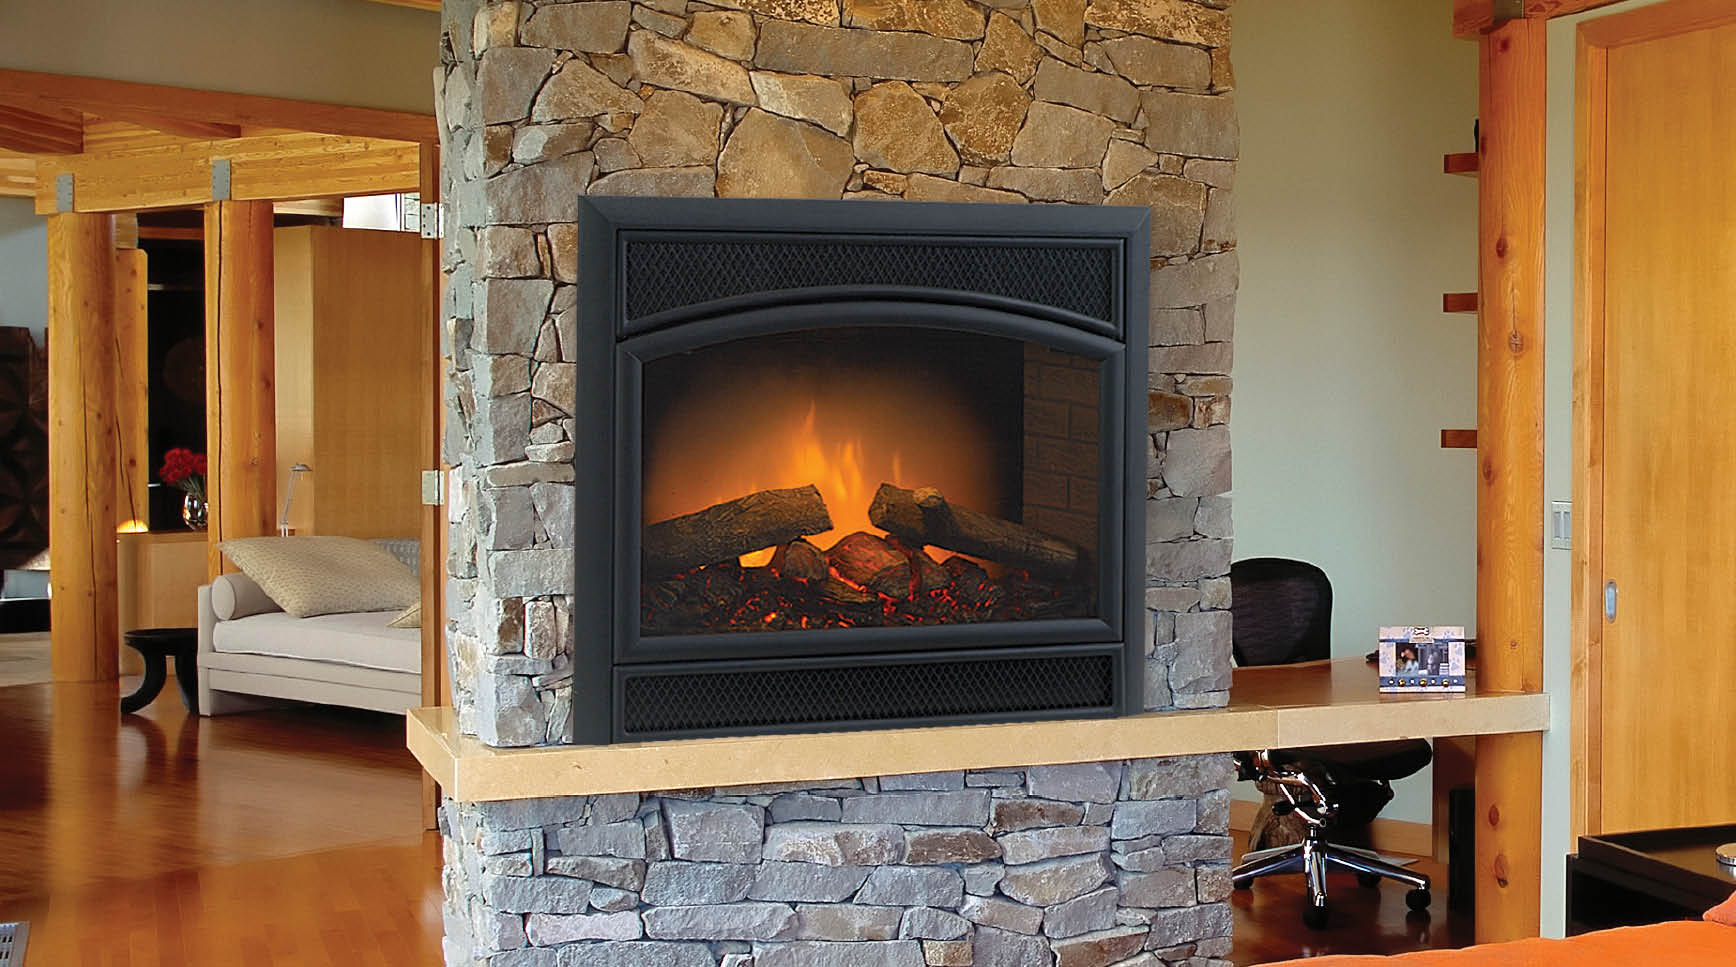 Electric fireplaces harding the fireplace Decorative hearth